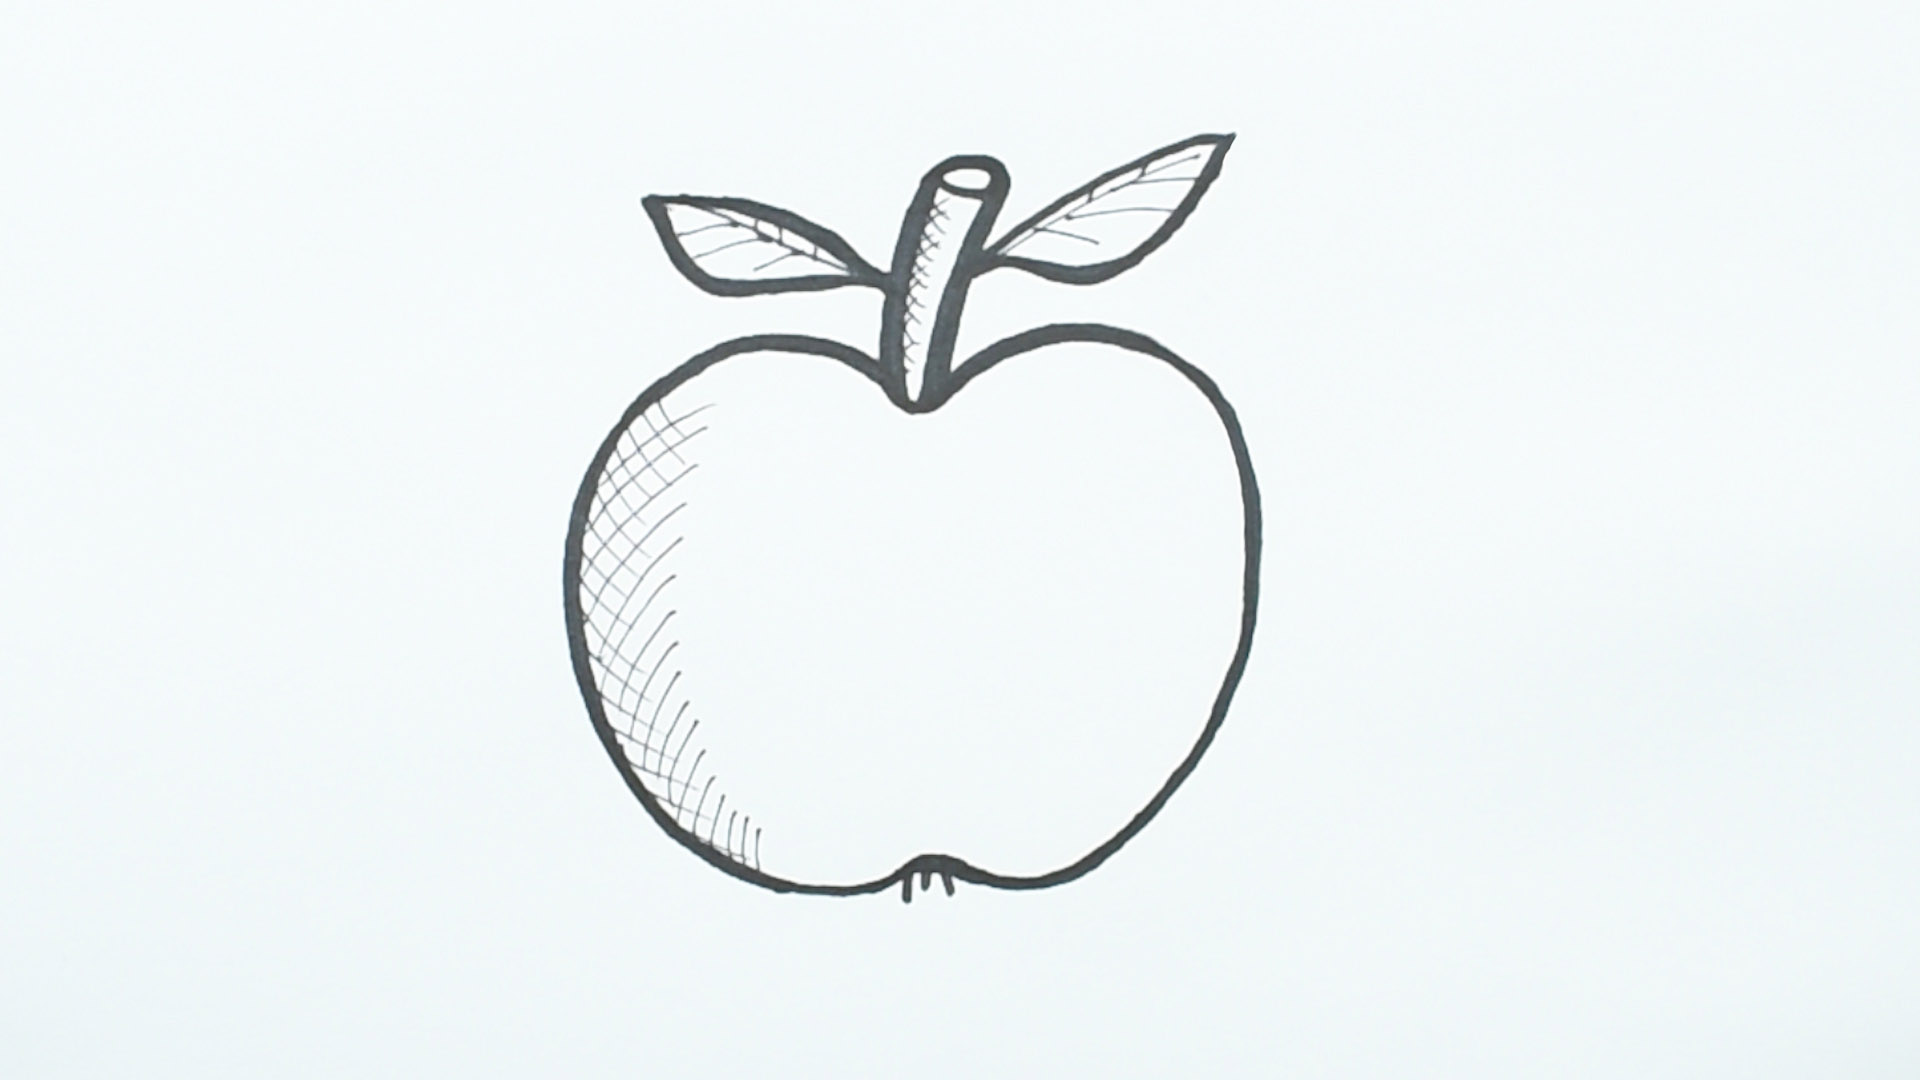 How to Draw an Apple: Step-by-Step Guide with Videos